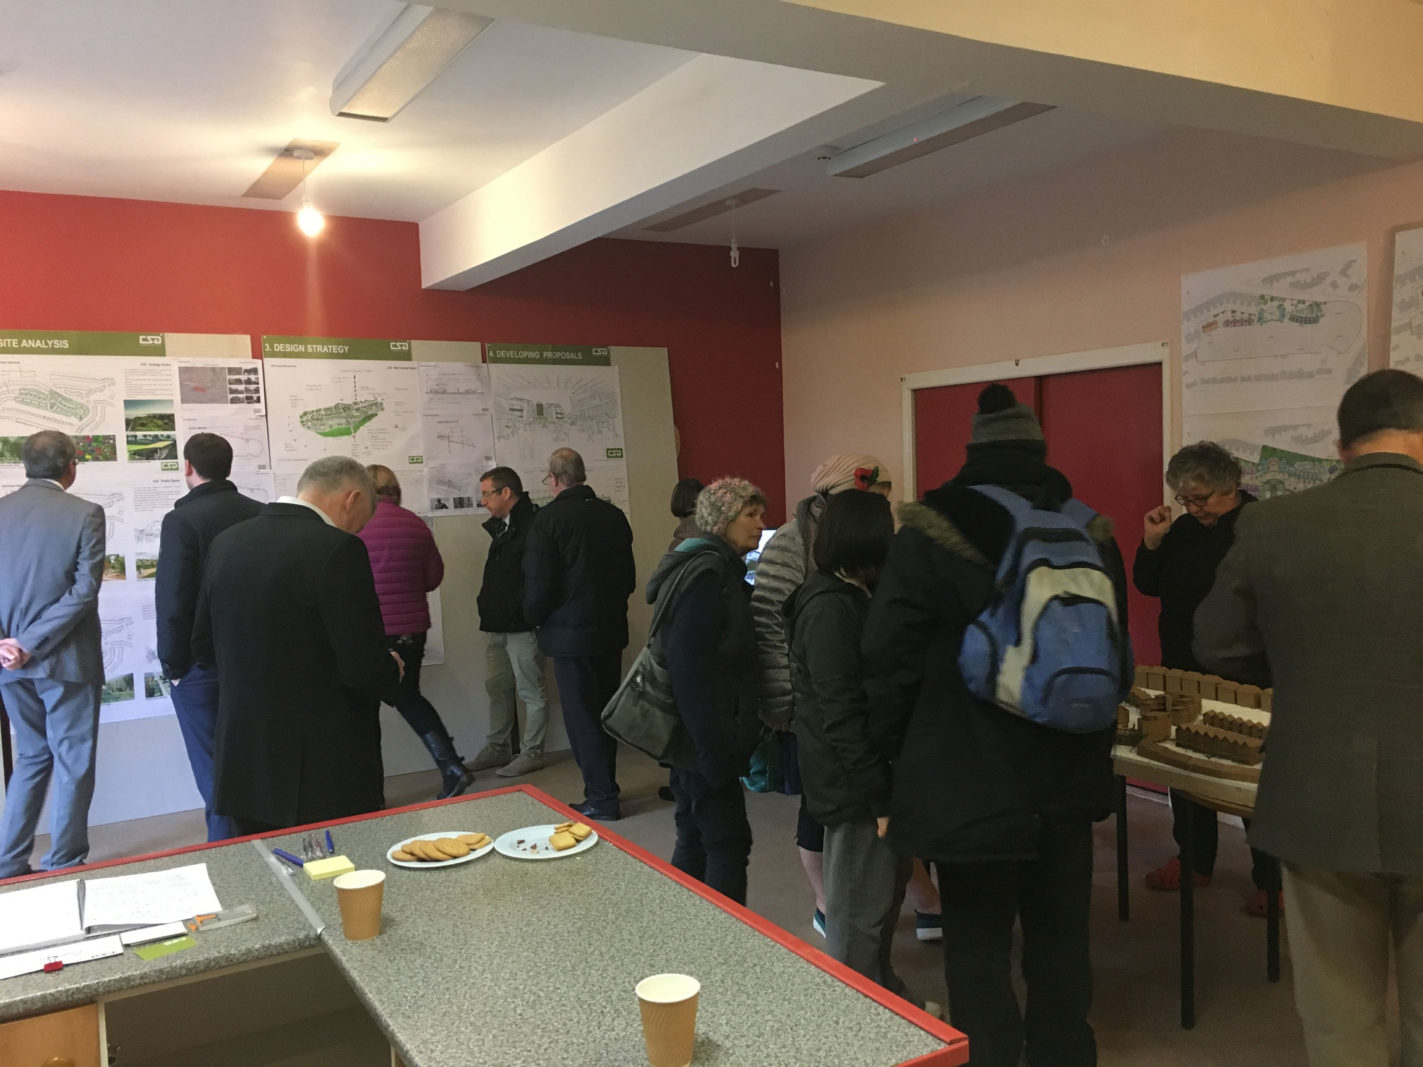 Successful Public Consultation event held in Plymouth for our Prince Maurice Road scheme – Rud Sawers Architects, Devon